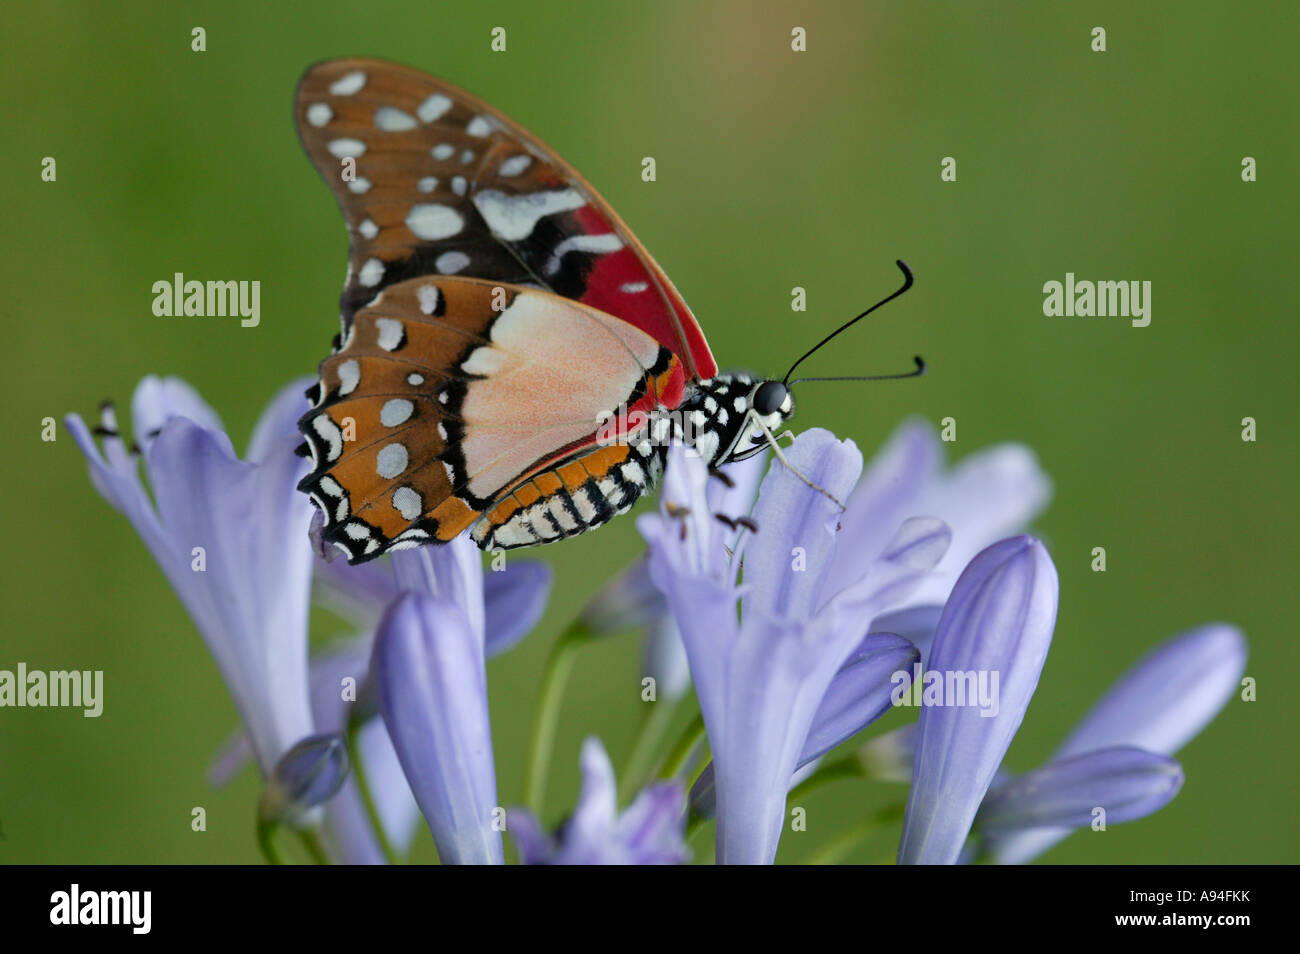 Angola white lady swordtail butterfly Graphium angolanus on flower Nelspruit Mpumalanga South Africa - Stock Image